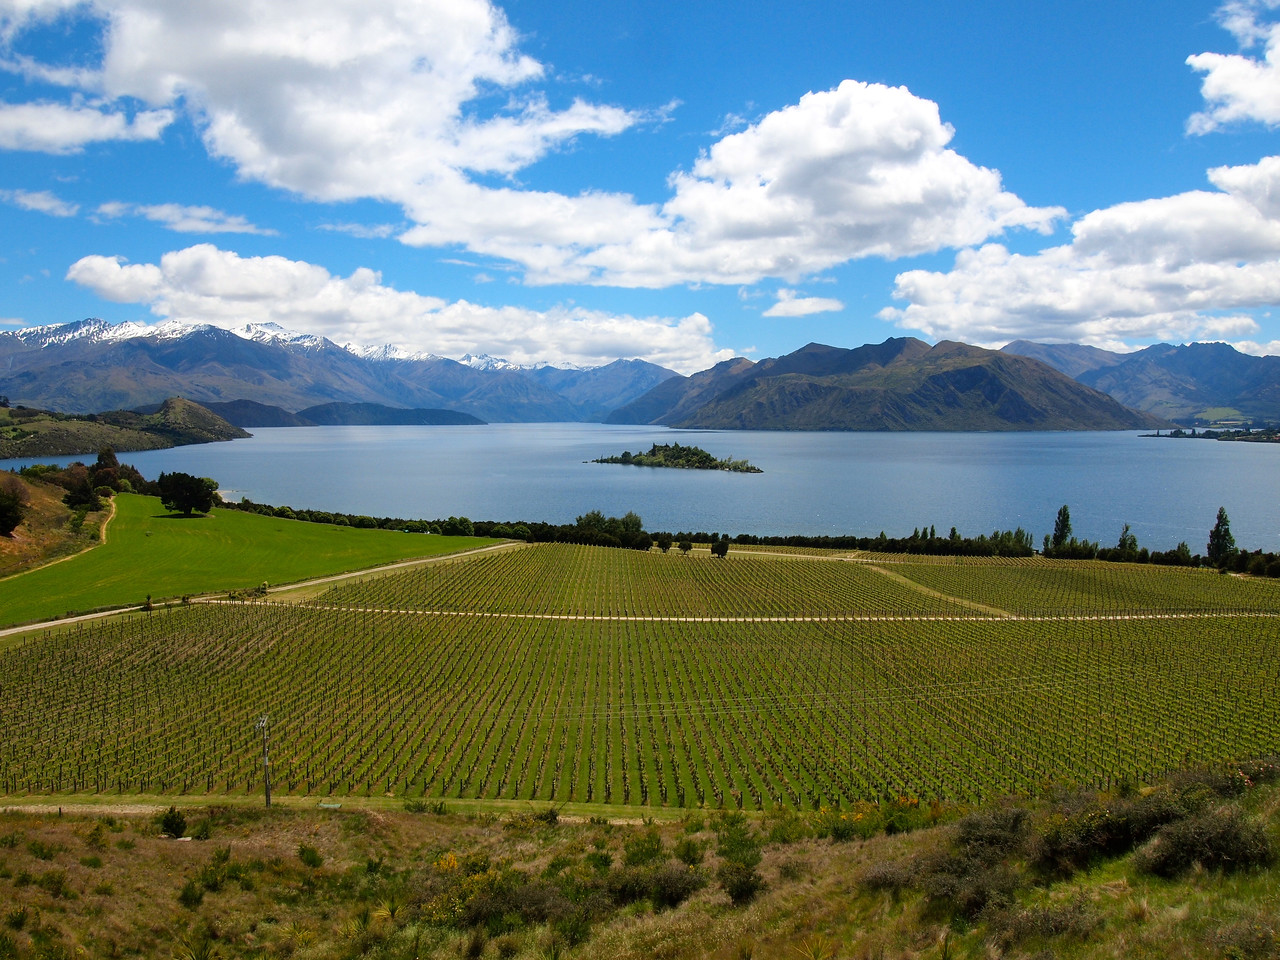 Rippon Vineyard in Wanaka, New Zealand